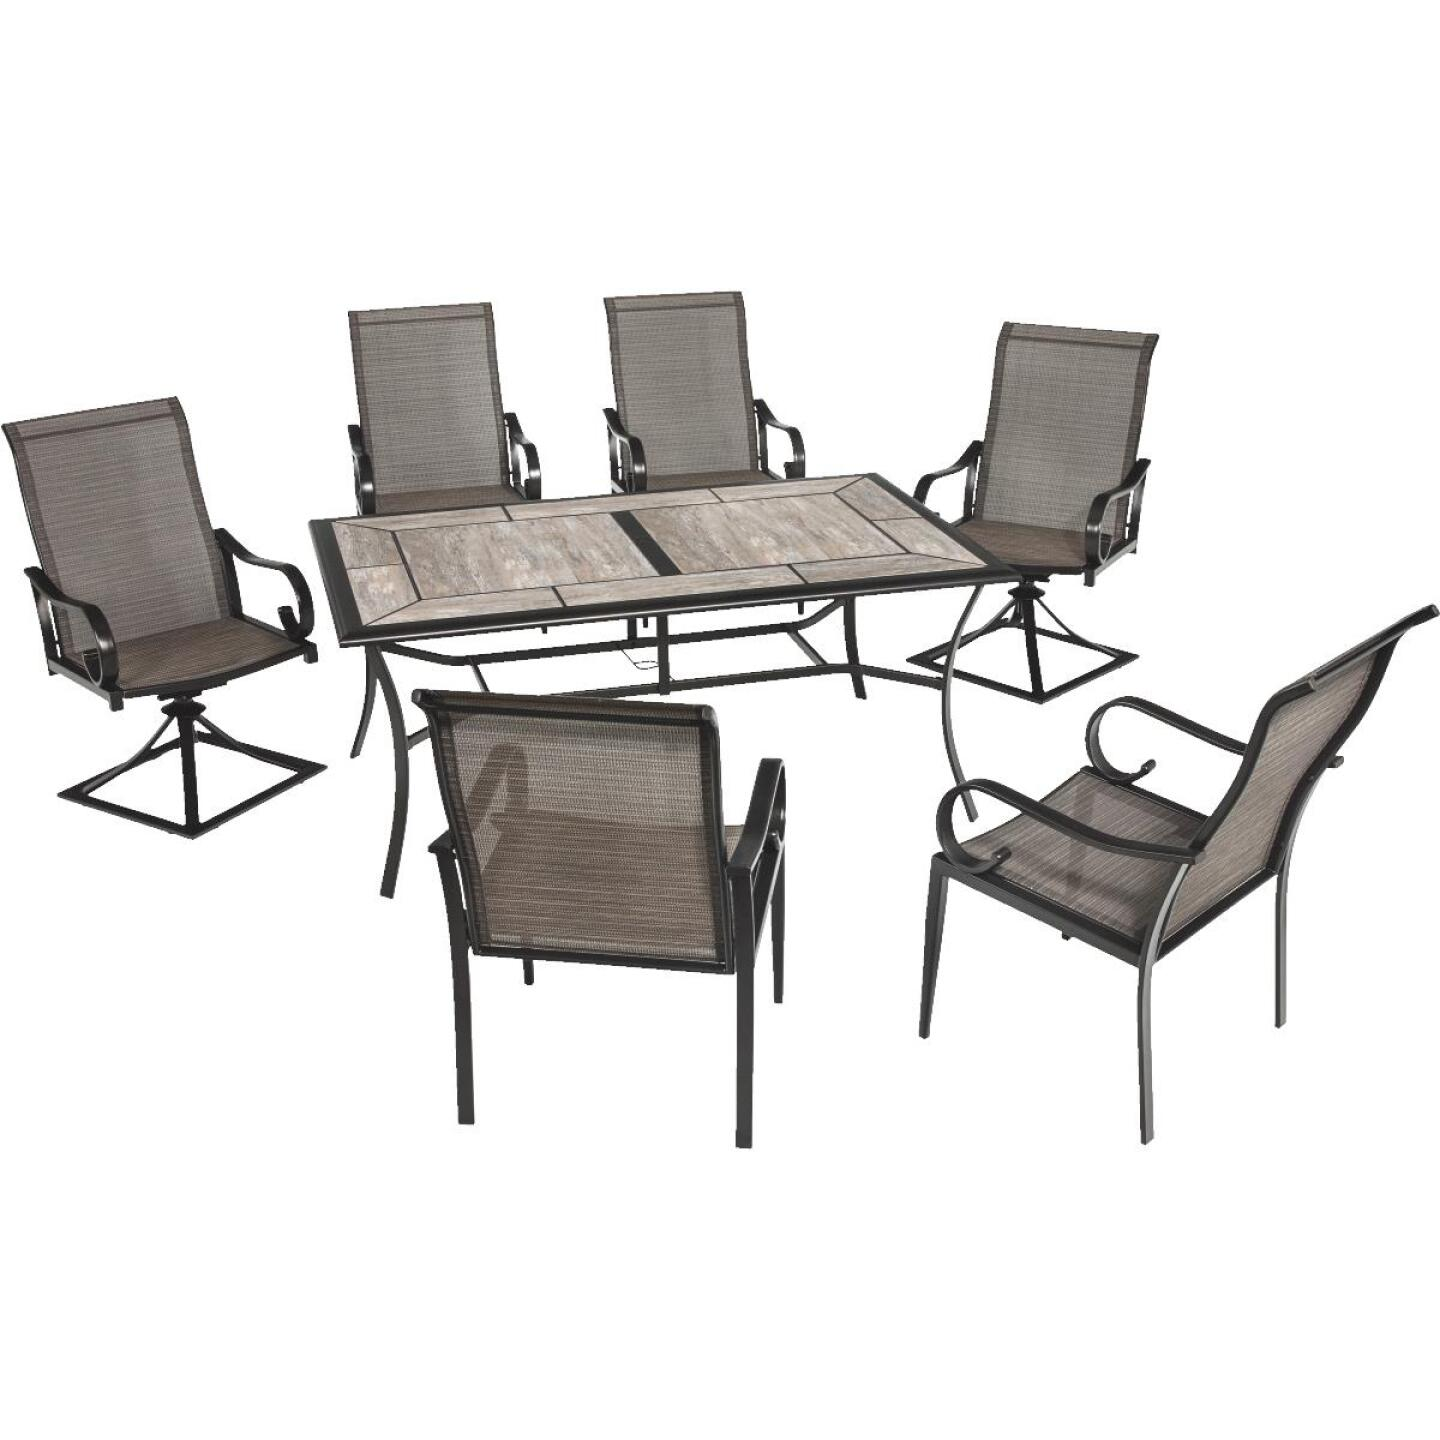 Outdoor Expressions Berkshire 7-Piece Dining Set Image 65